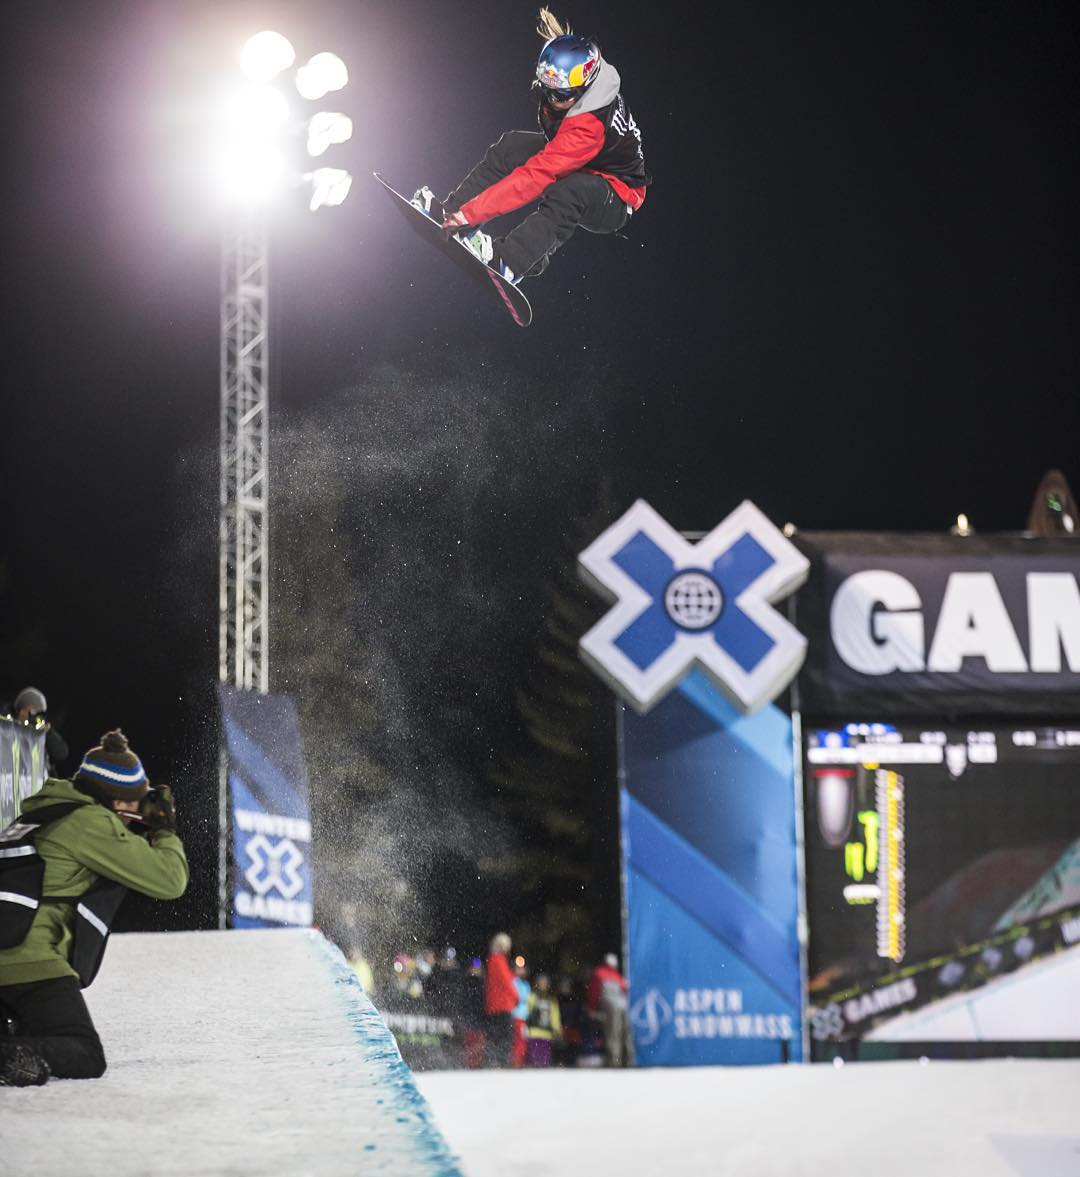 #XGames Aspen is exactly 50 days away! (